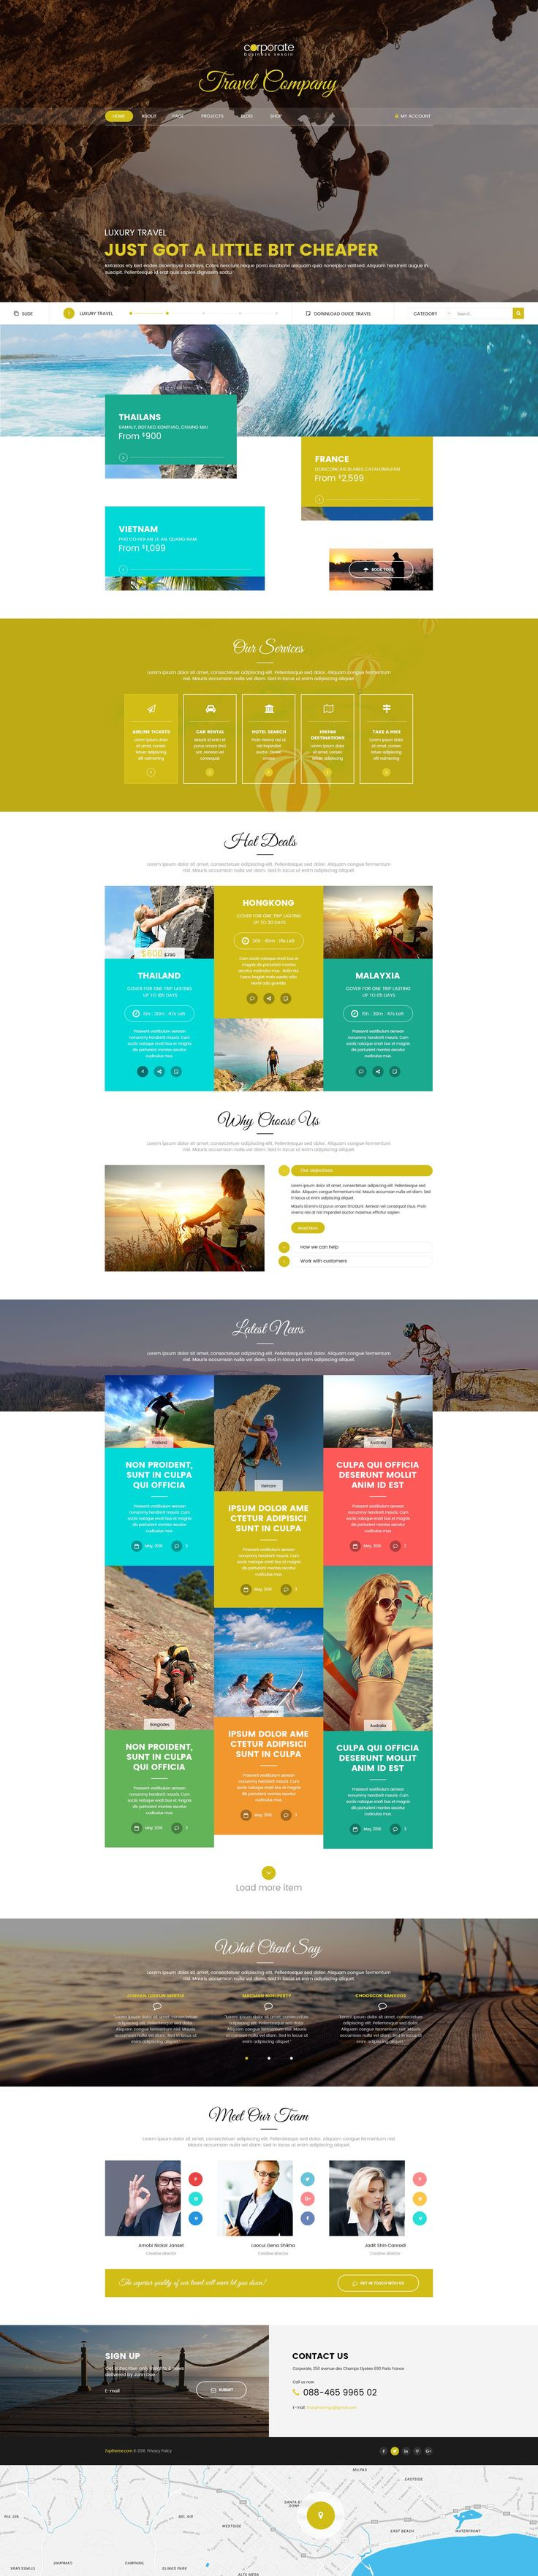 Best Premium Travel Agency PSD Template Download